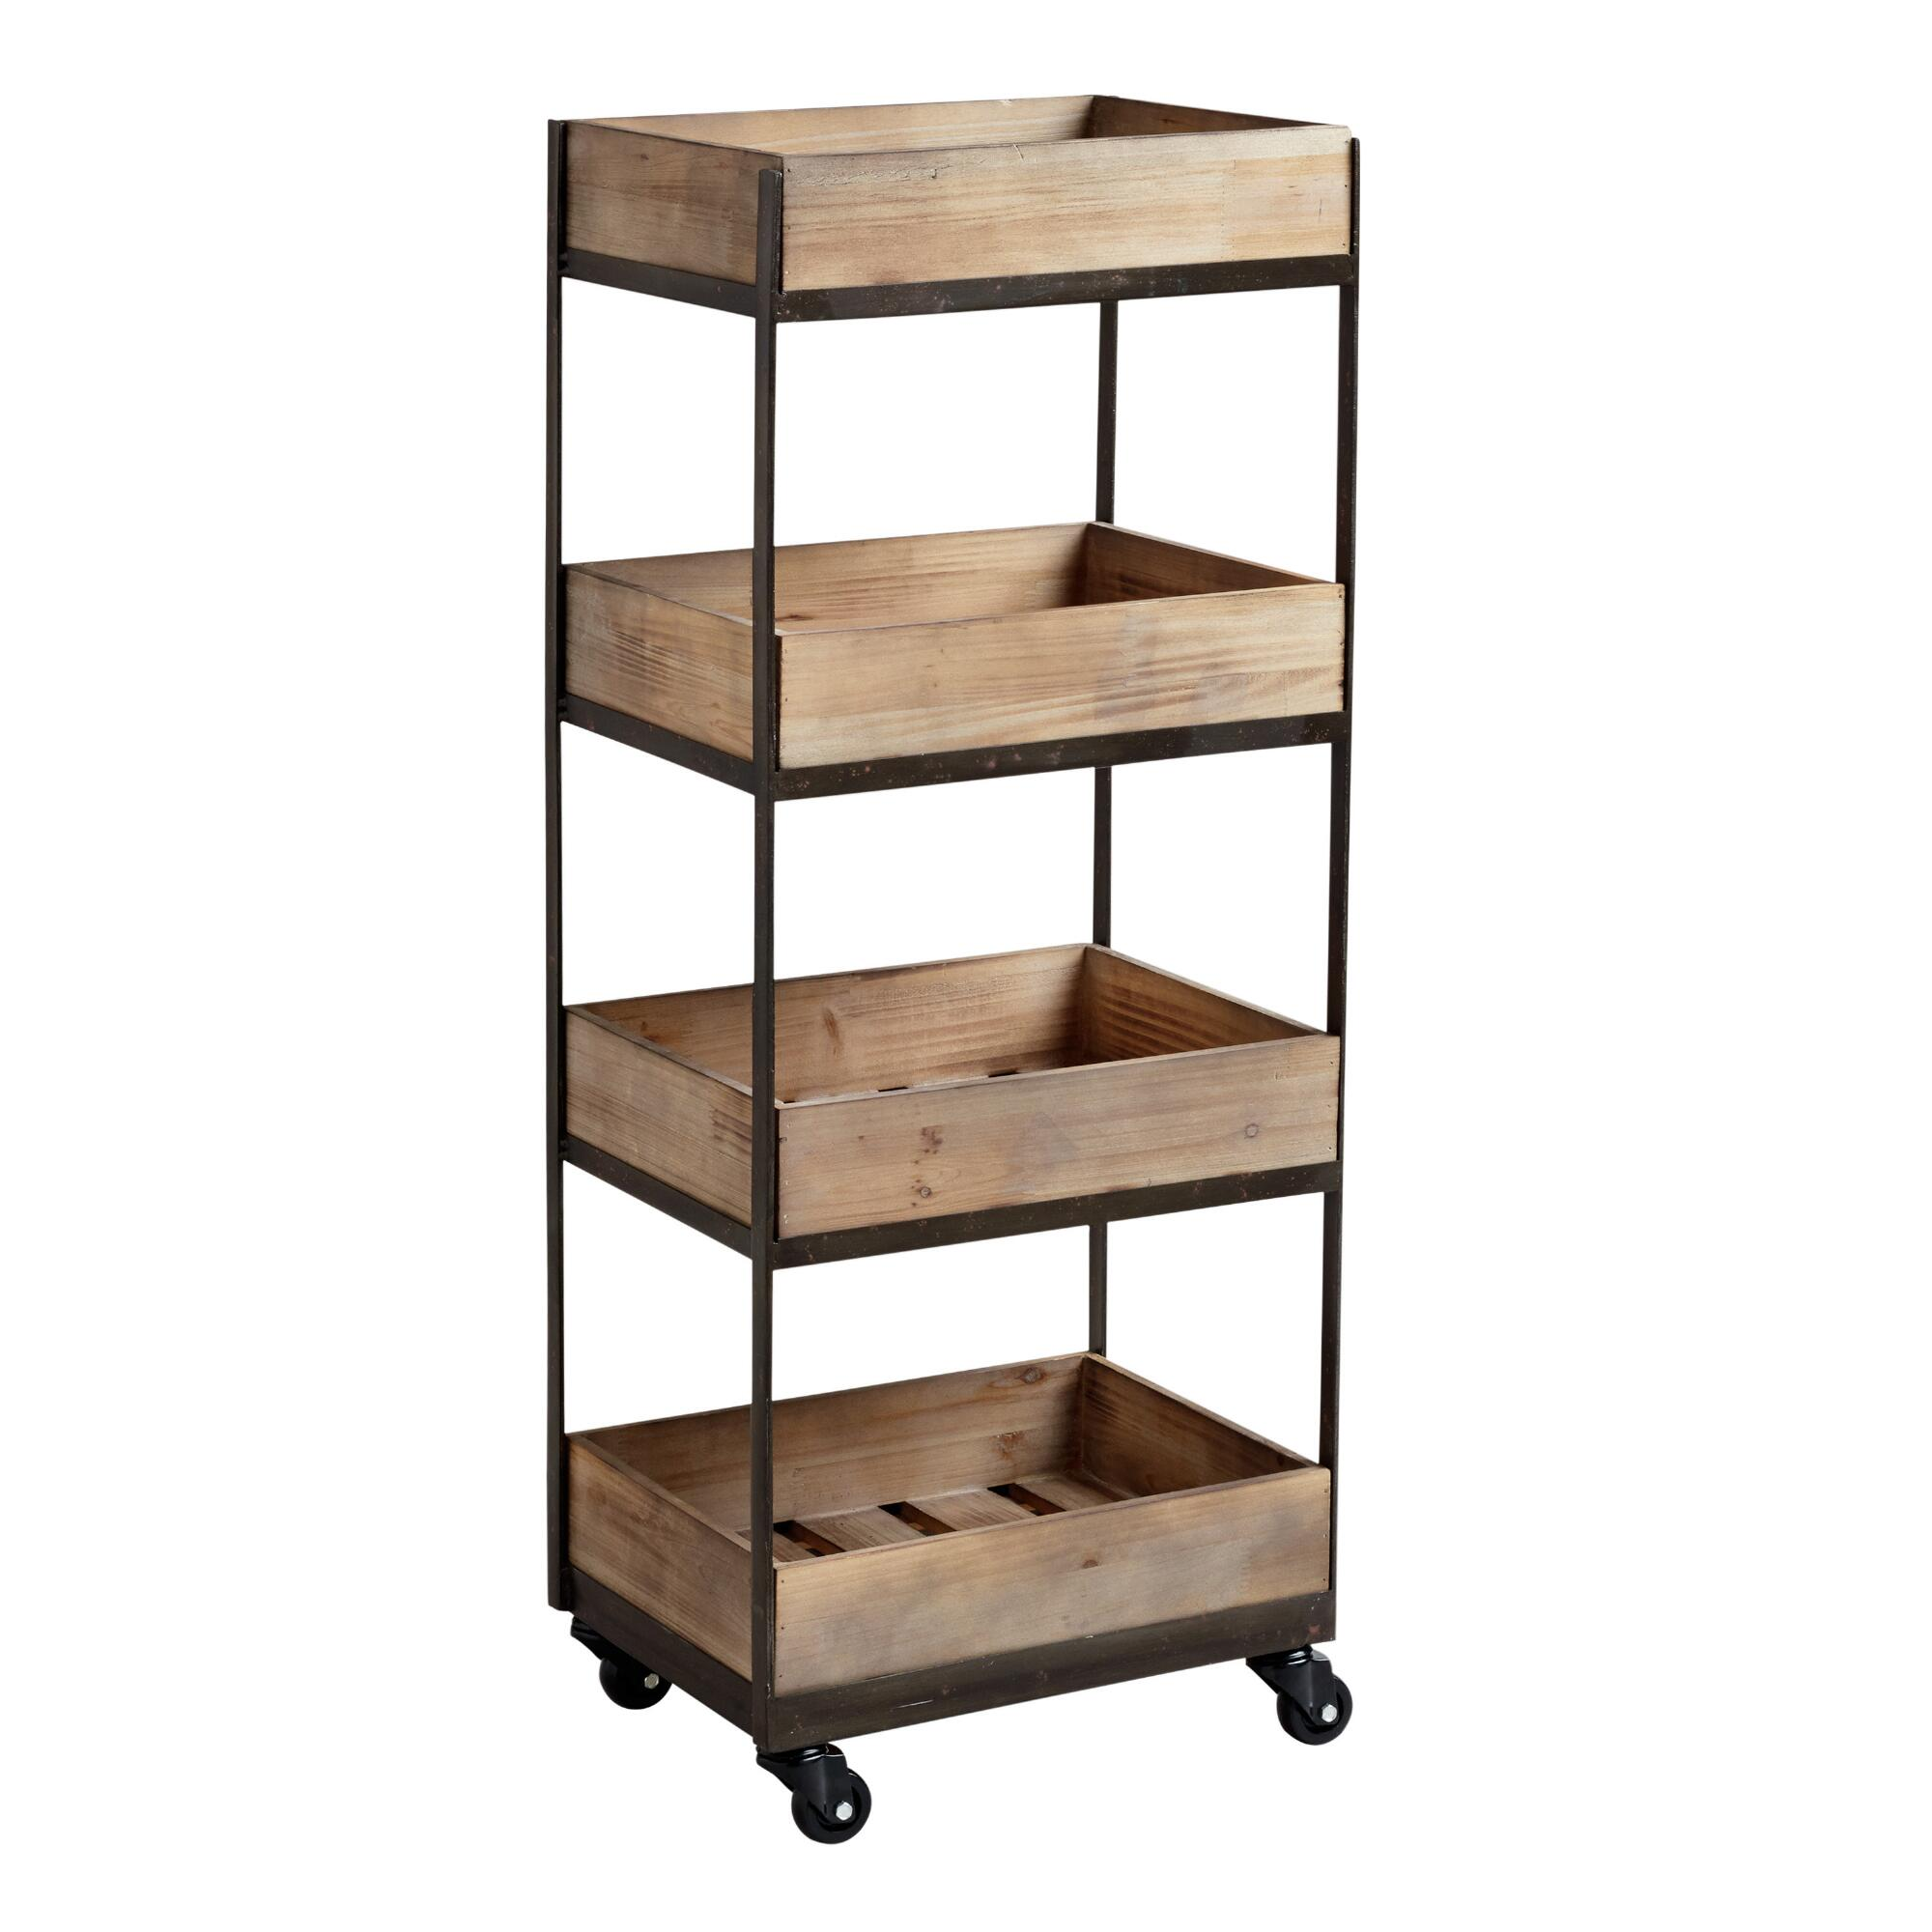 4 shelf wooden gavin rolling cart